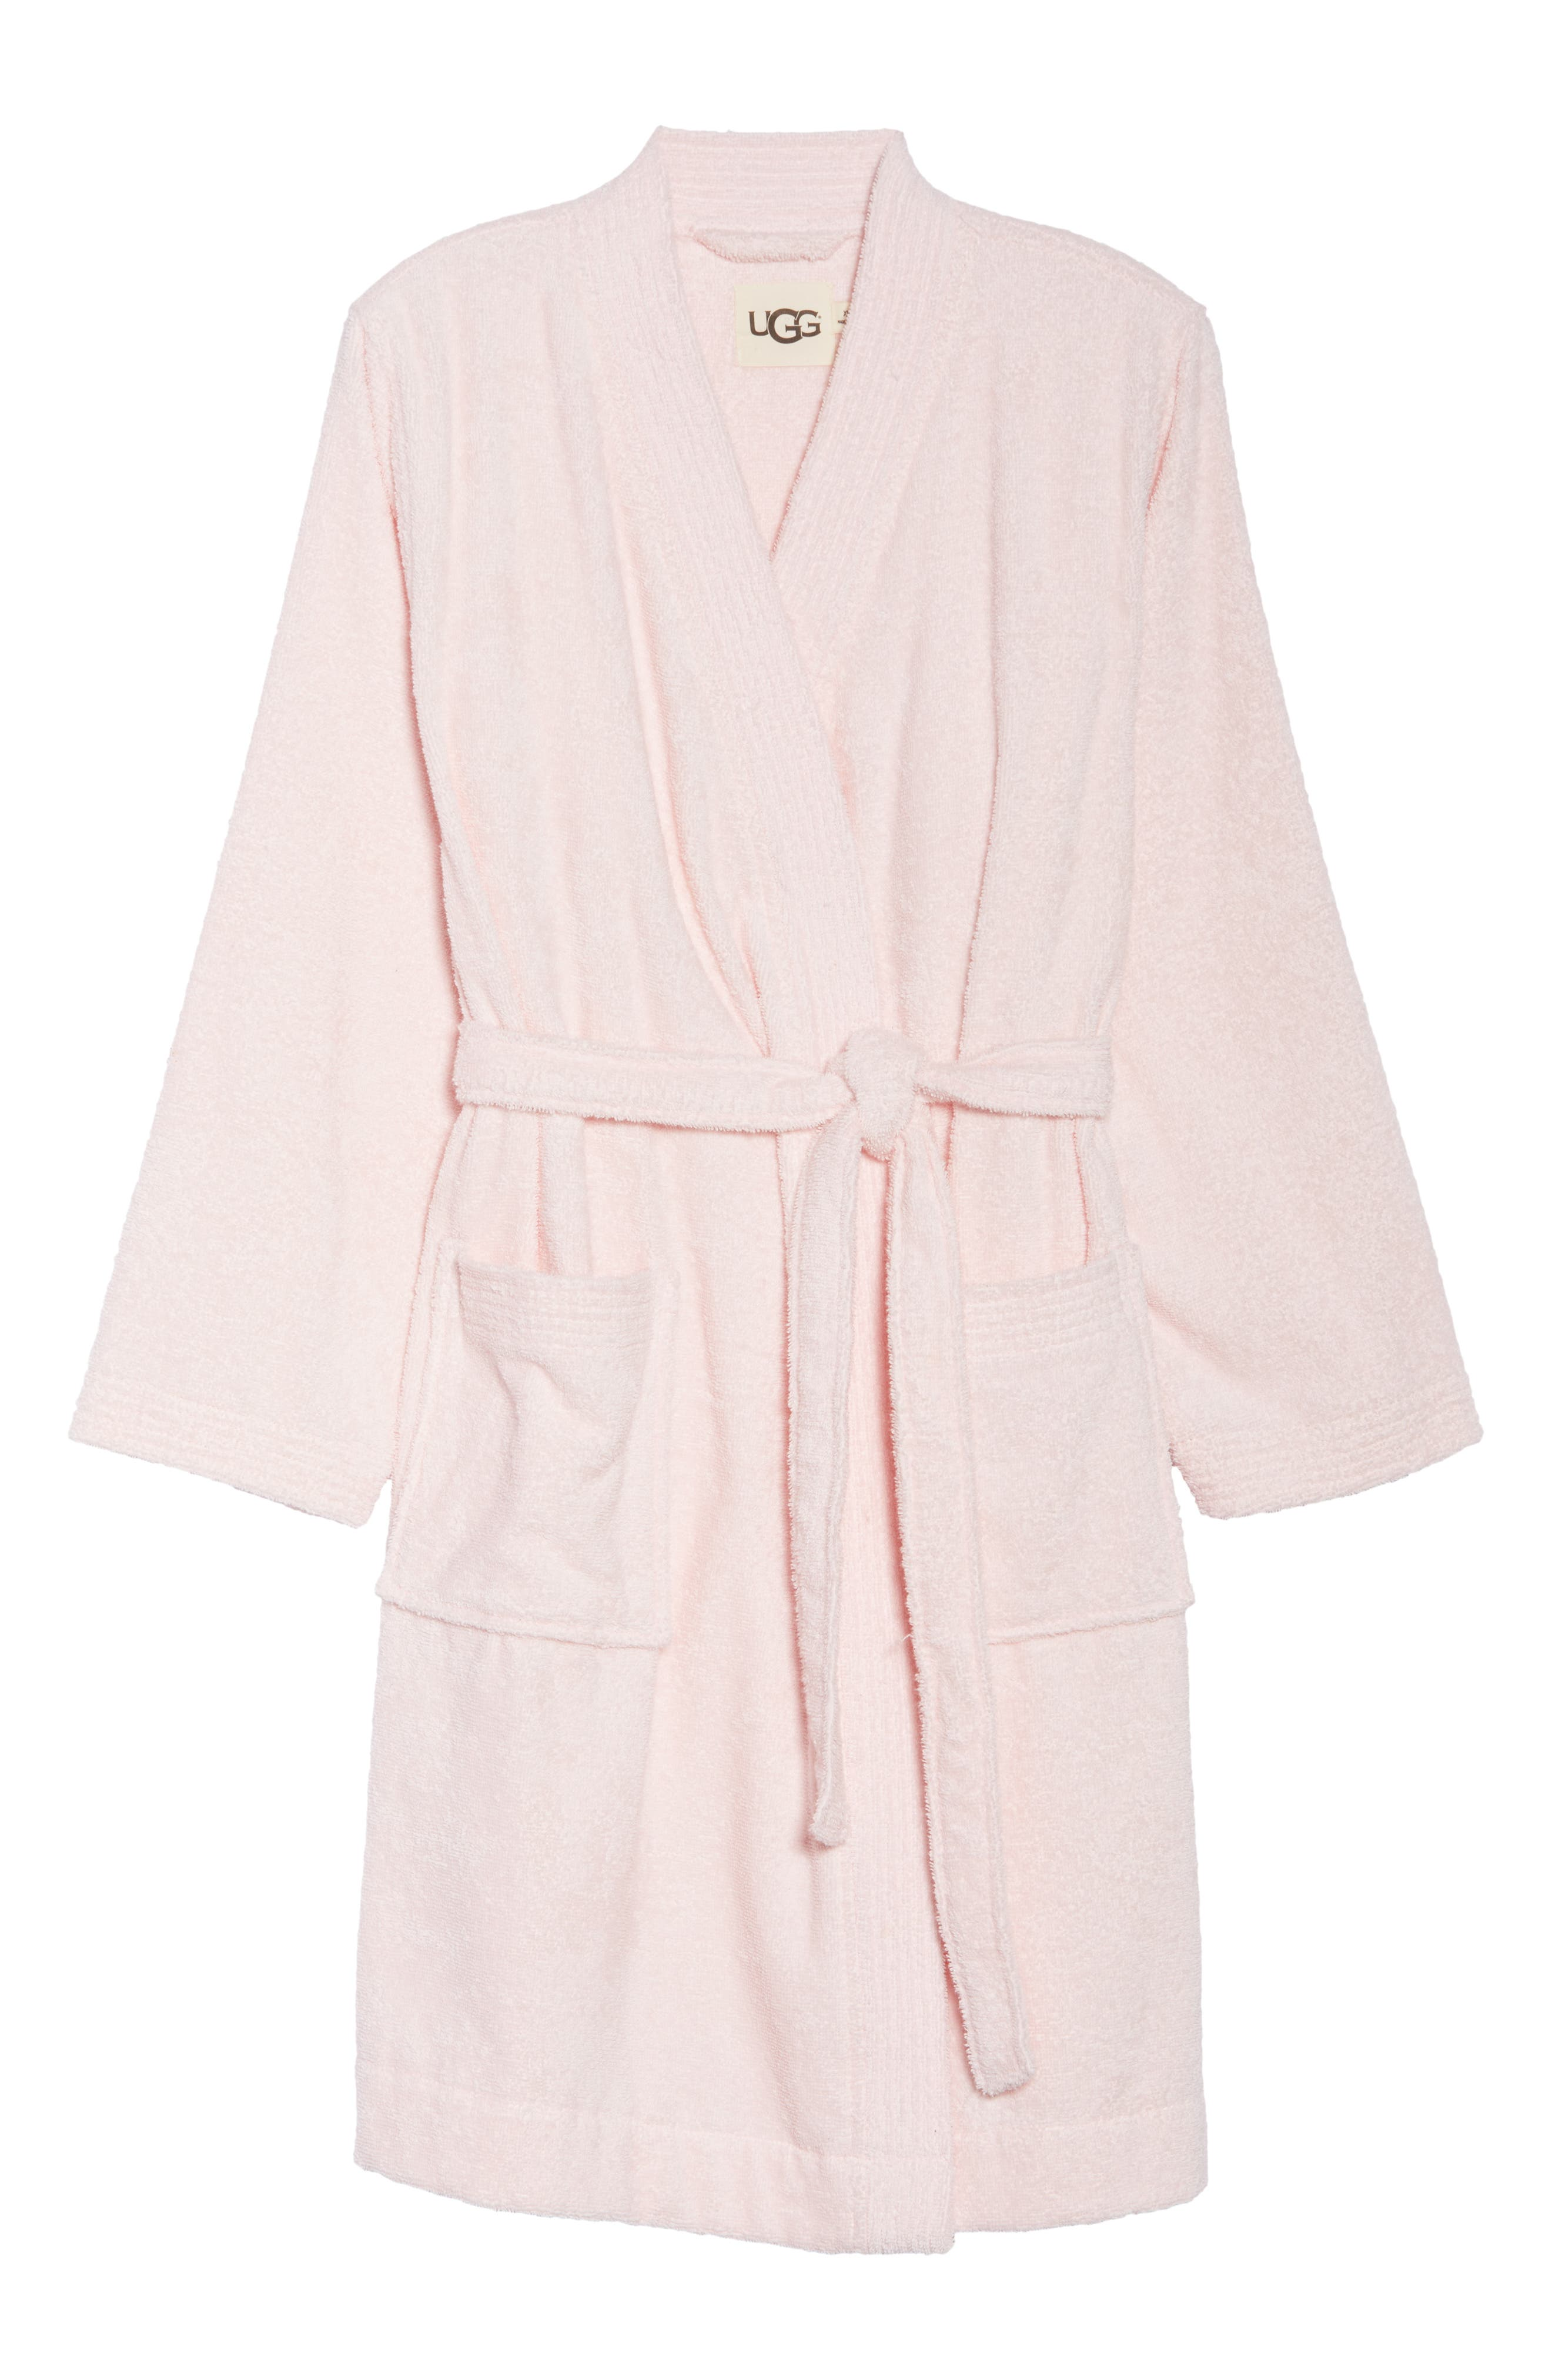 UGG<SUP>®</SUP>, Lorie Terry Short Robe, Alternate thumbnail 6, color, SEASHELL PINK